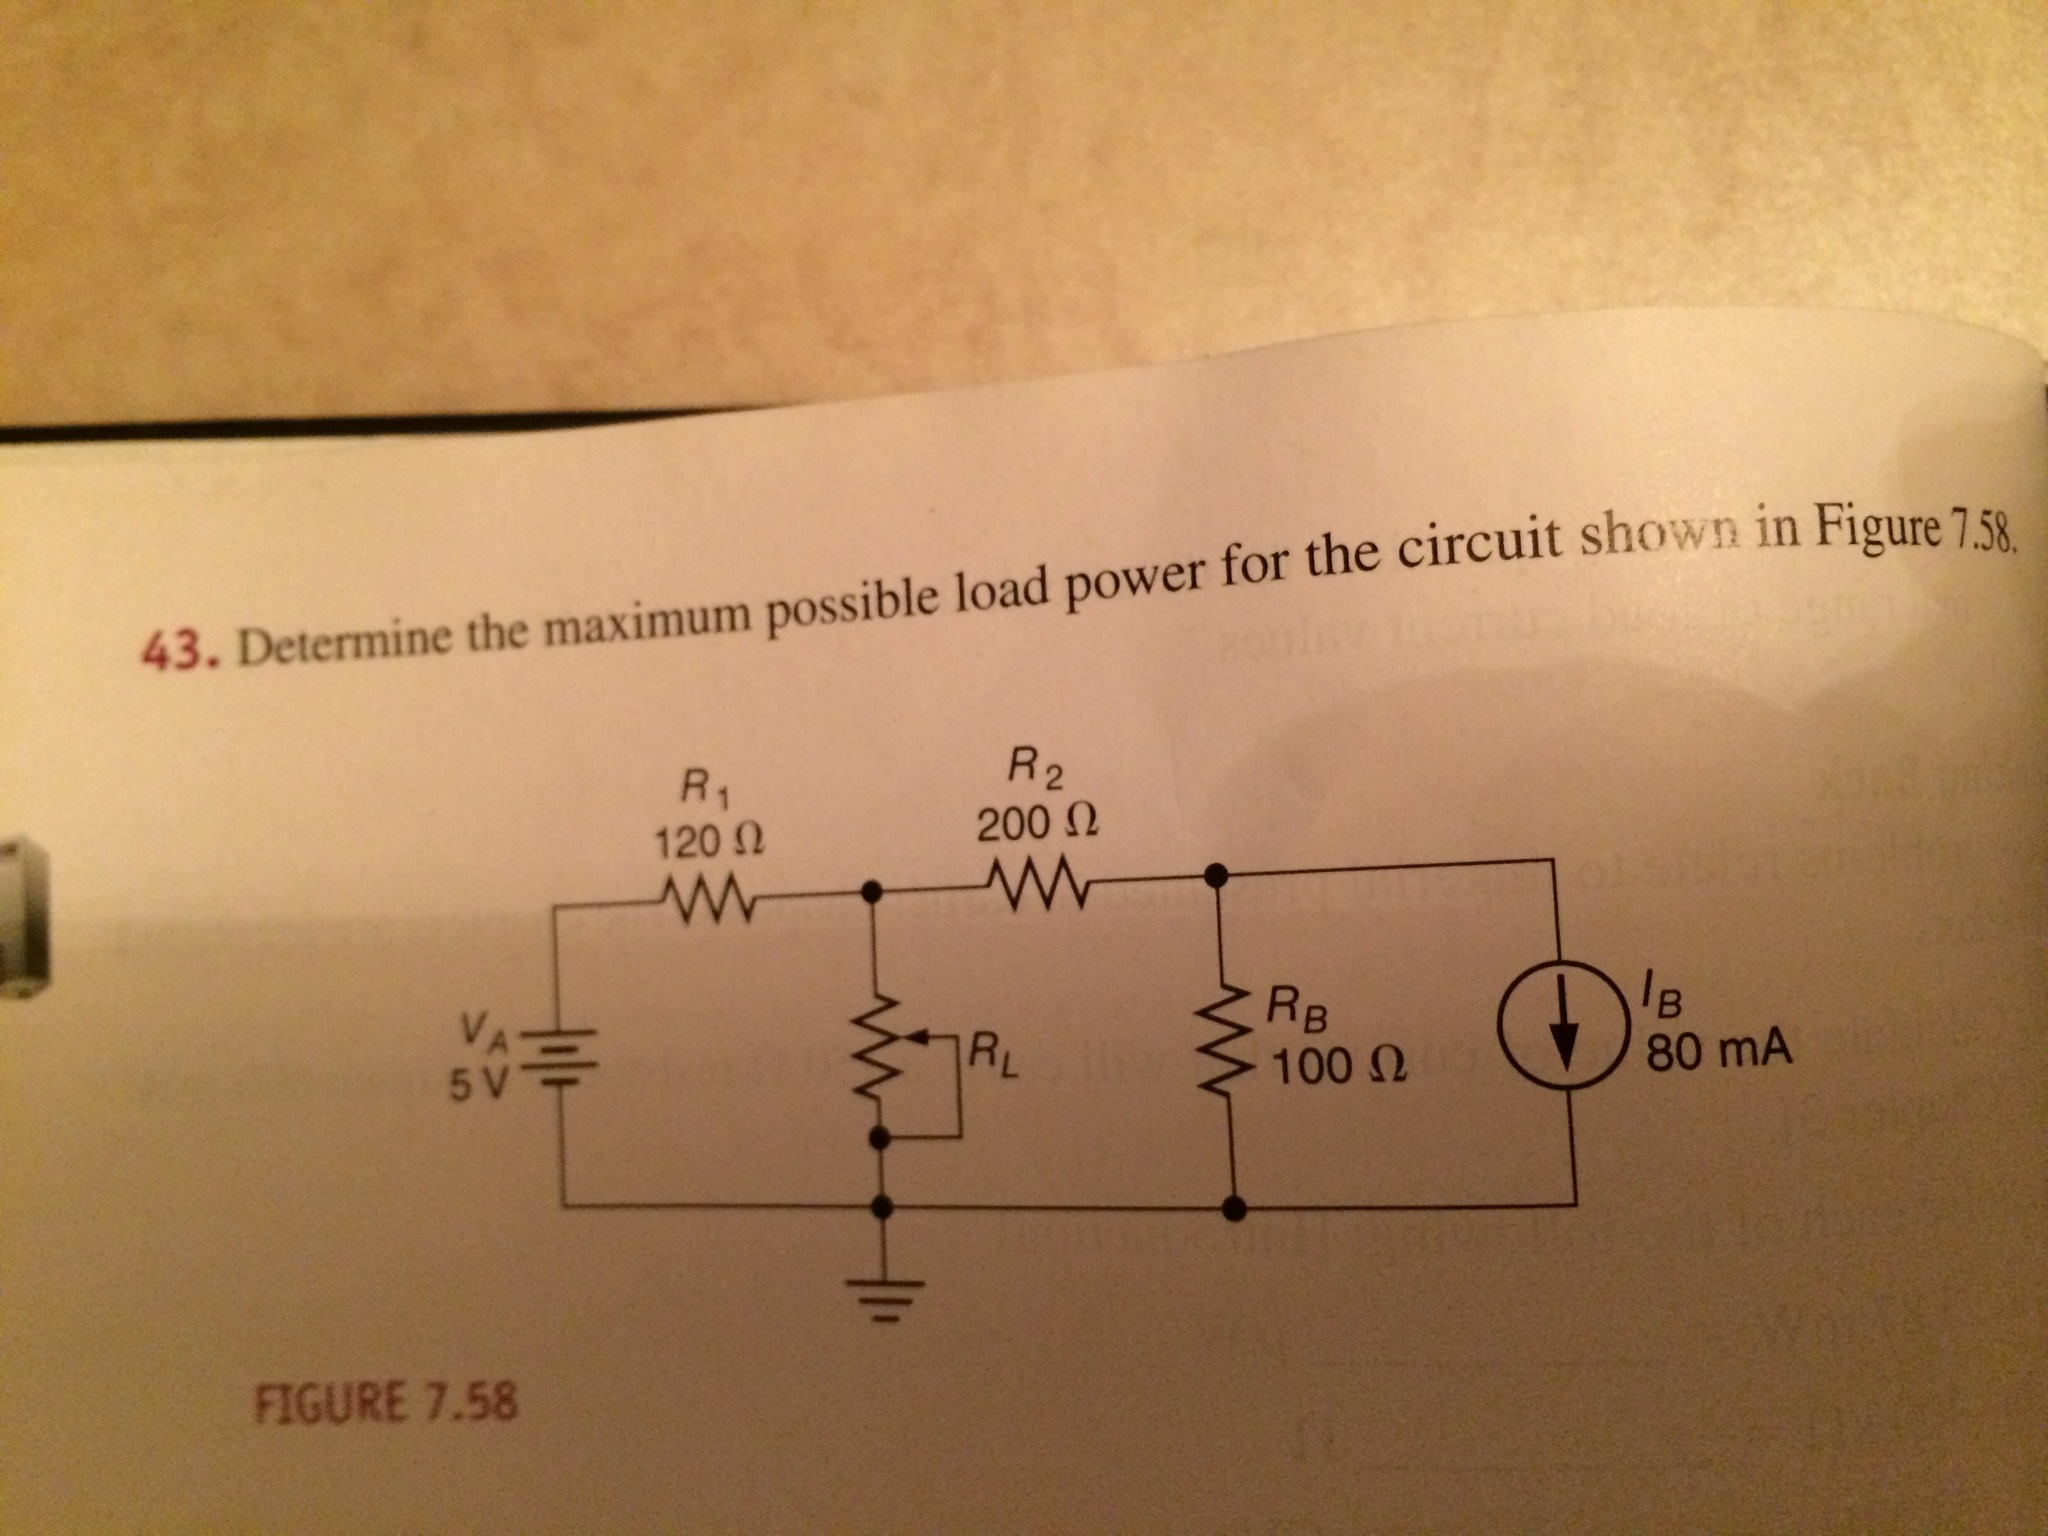 Determine the maximum possible load power for the